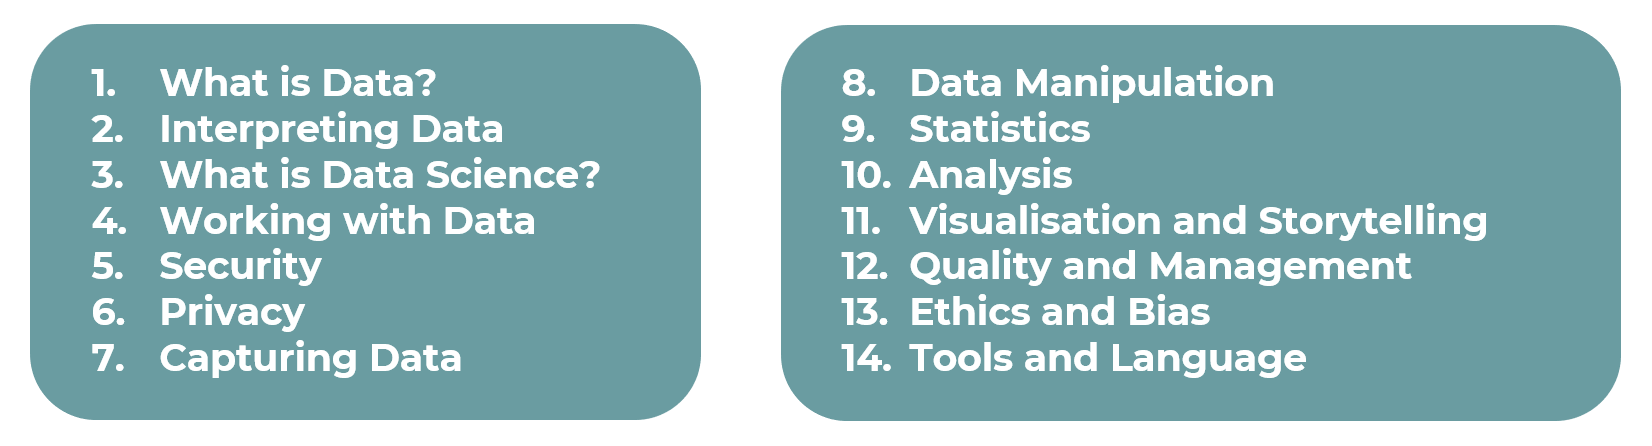 1. What is Data? 2. Interpreting Data 3. What is Data Science? 4. Working with Data 5. Security 6. Privacy 7. Capturing Data 8. Data Manipulation 9. Statistics 10. Analysis 11. Visualisation and Storytelling 12. Quality and Management 13. Ethics and Bias 14. Tools and Language